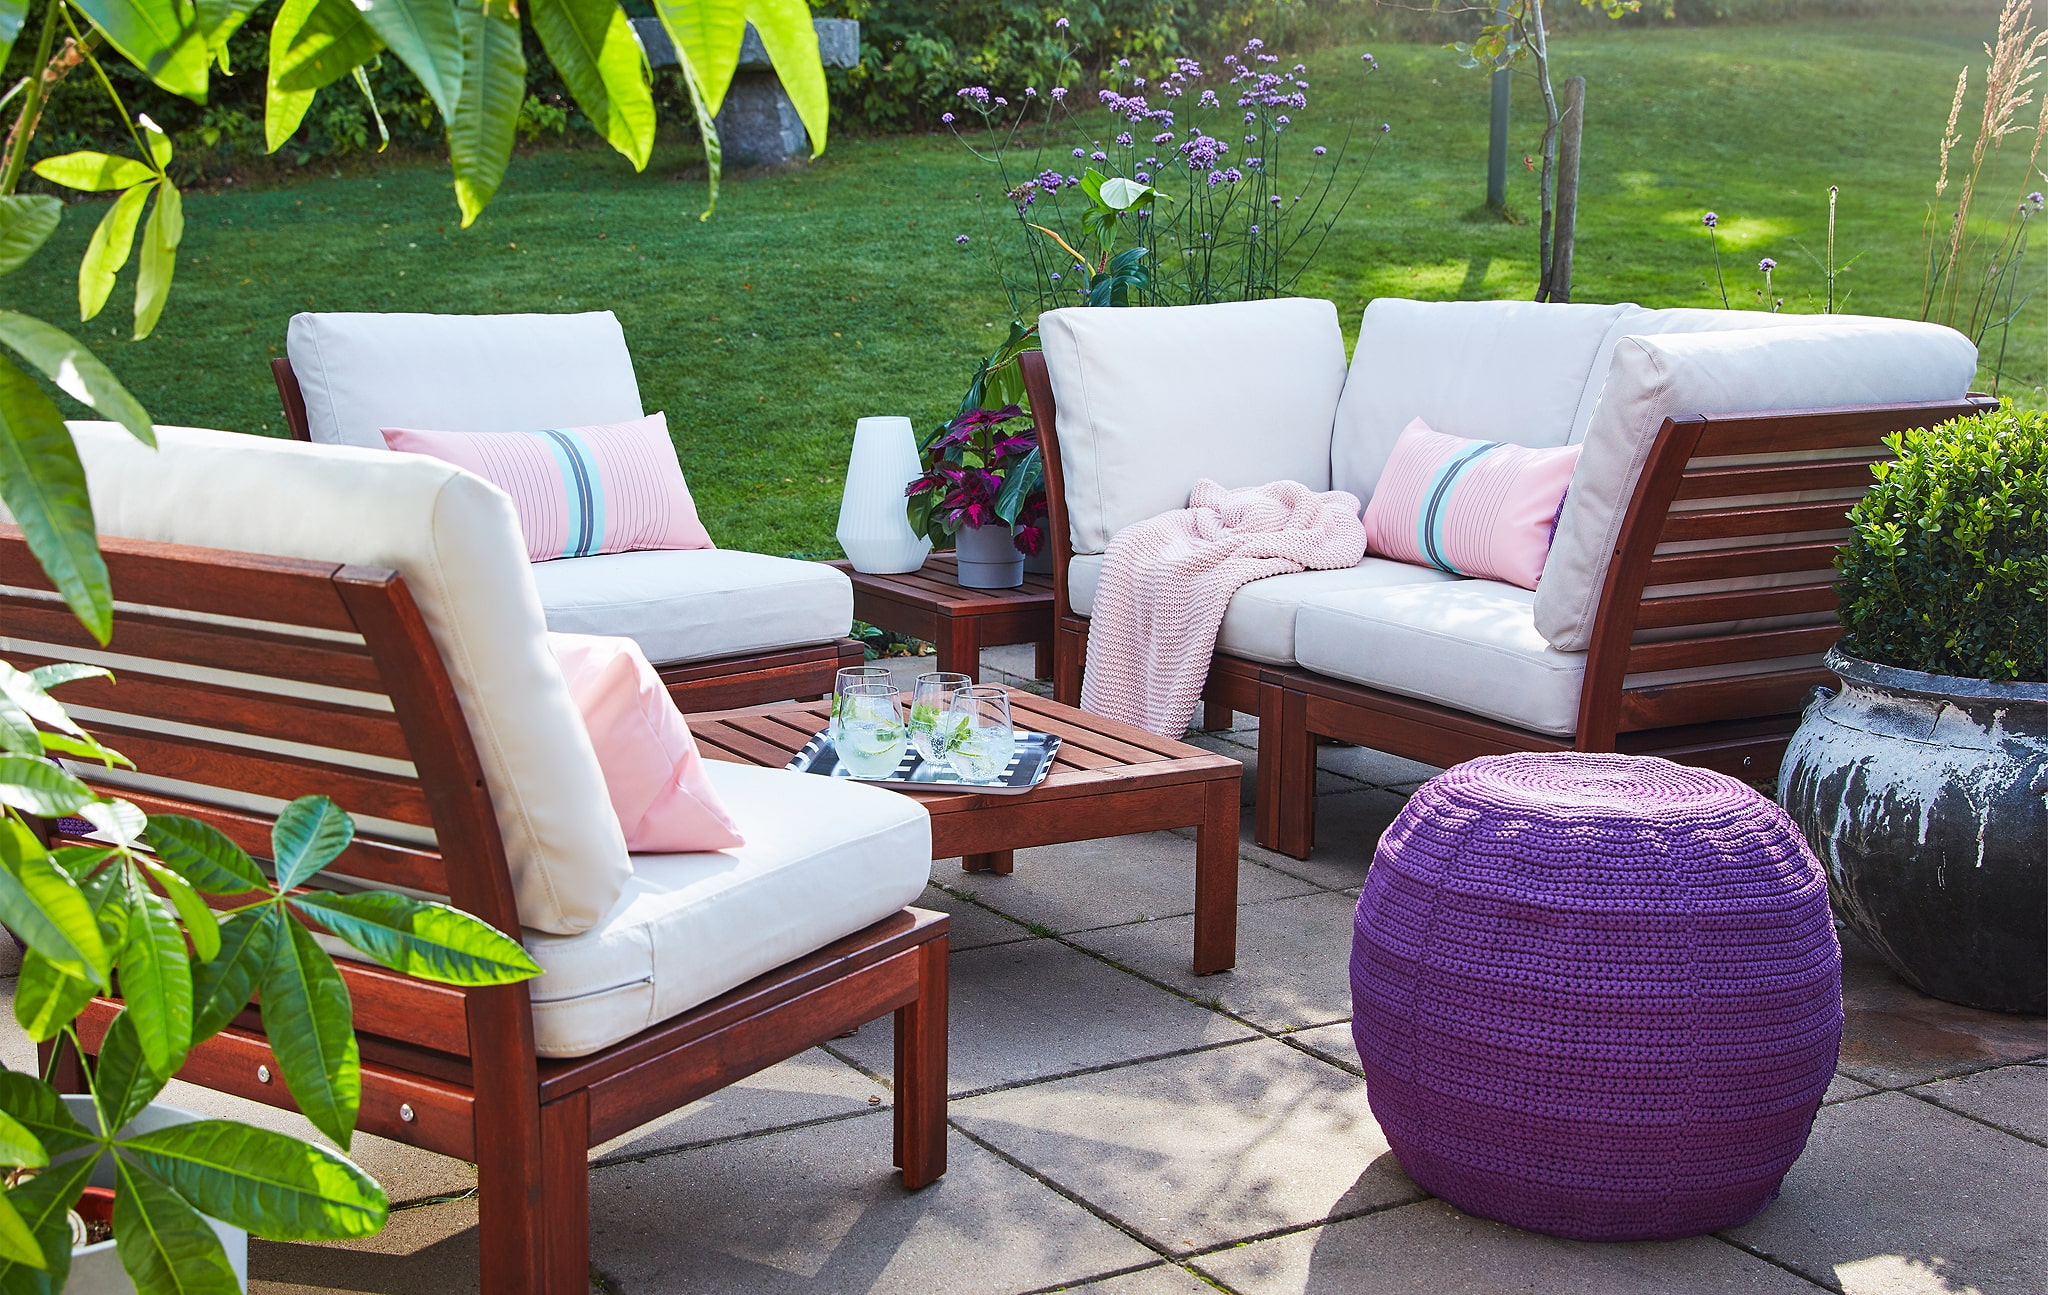 Breathing space: prepare your patio for spring